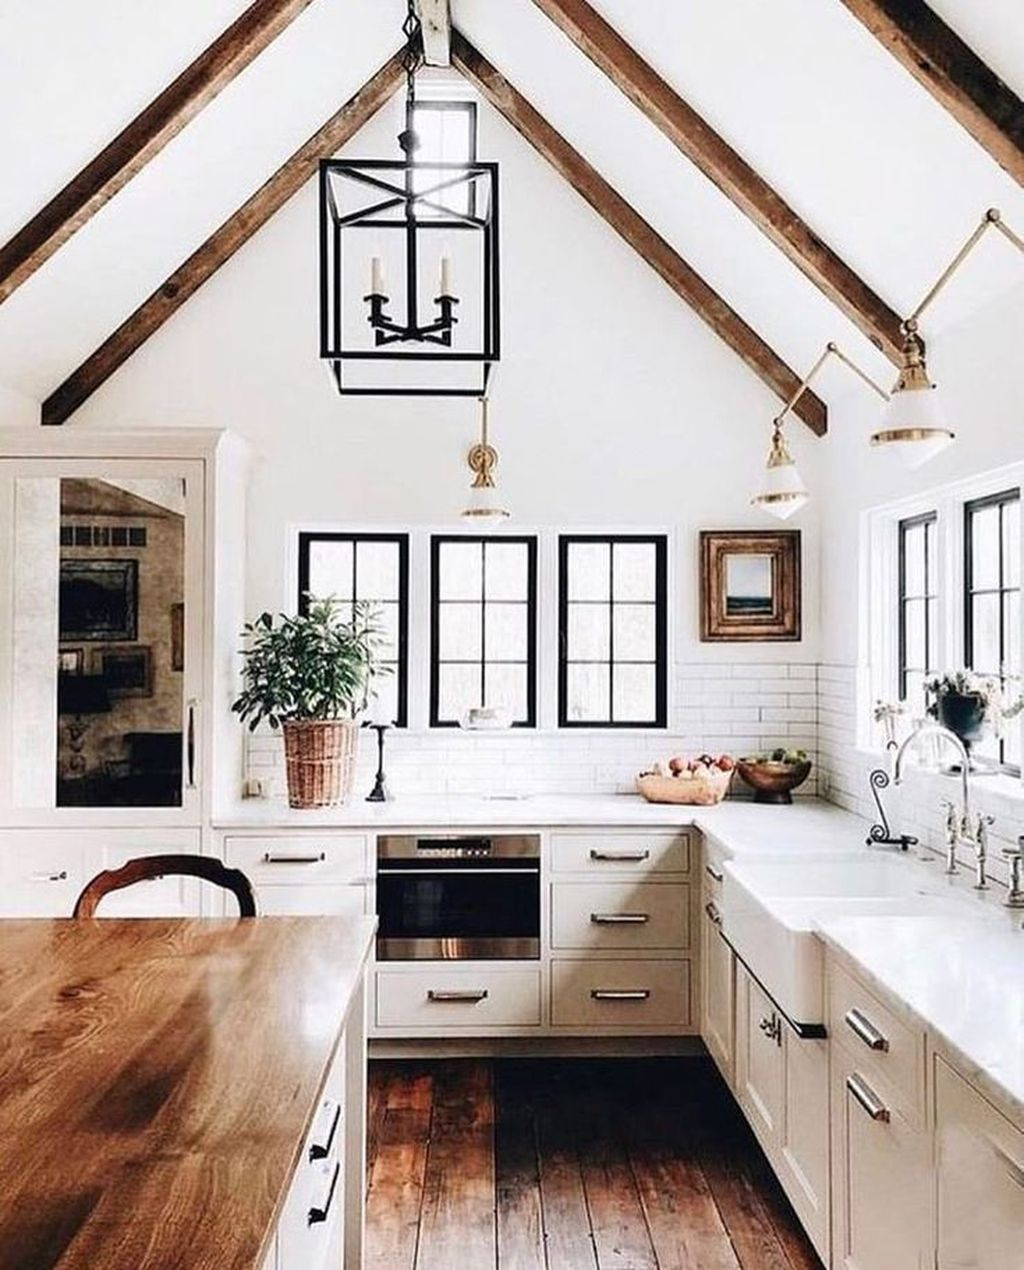 The Best Modern Farmhouse Kitchen Design Ideas 01